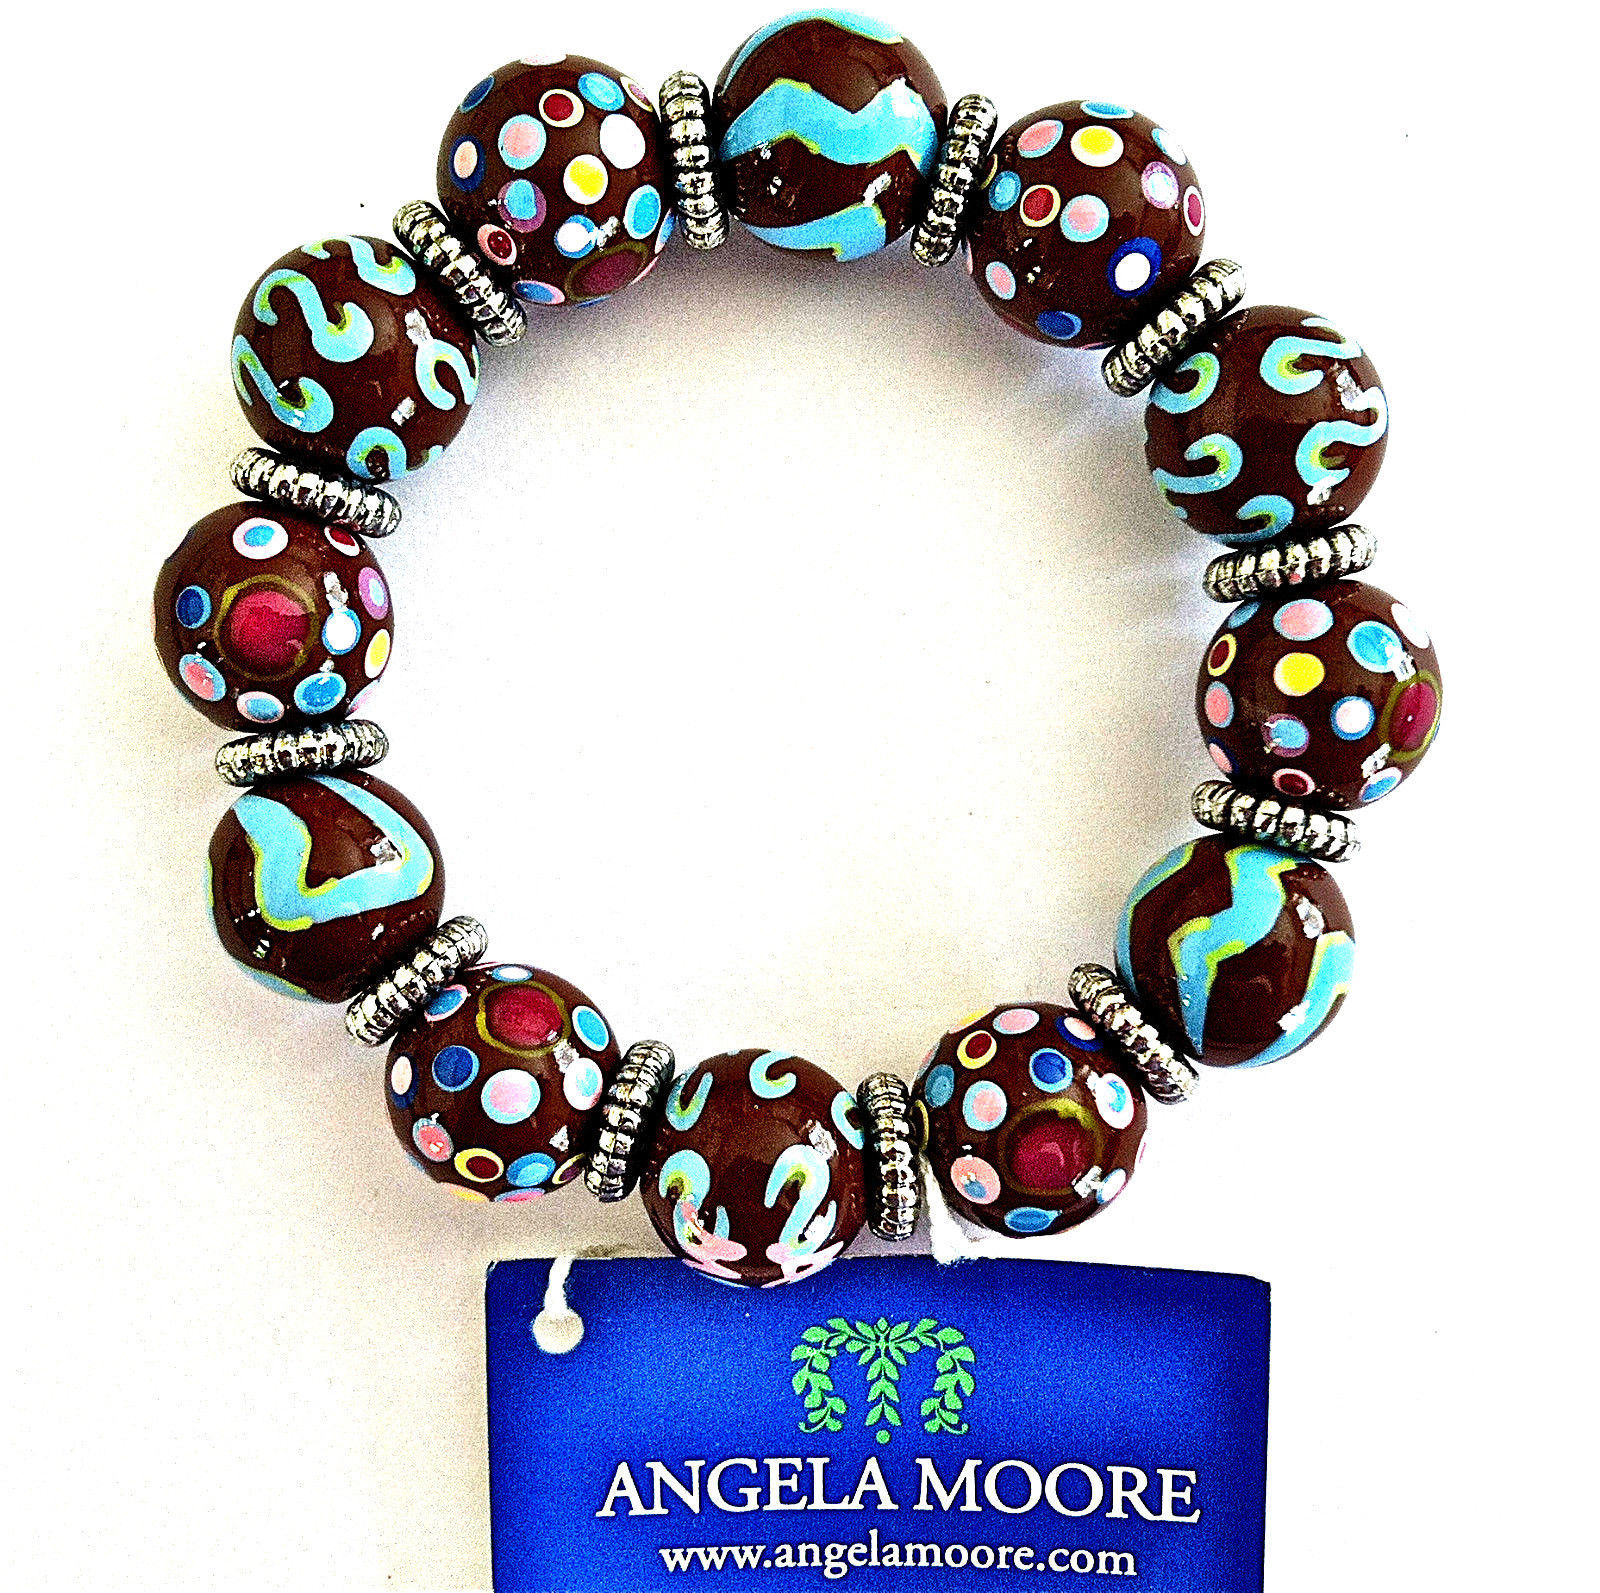 NEW ANGELA MOORE BROWN TEAL PINK BRACELET SILVER SPACERS POLKO DOTS & STRIPES image 4